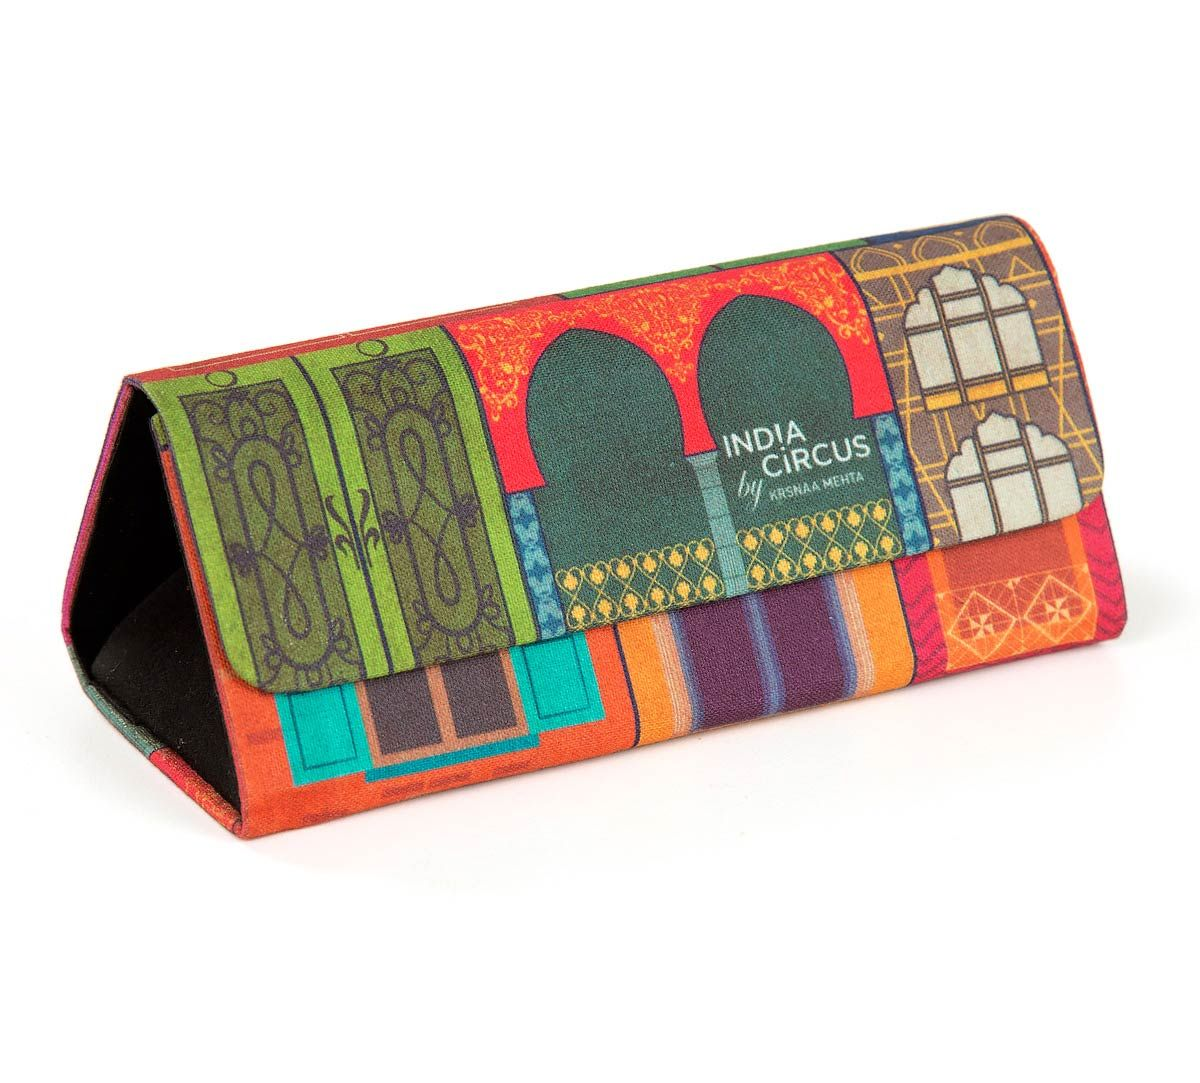 India Circus Mughal Doors Reiteration Spectacle Case